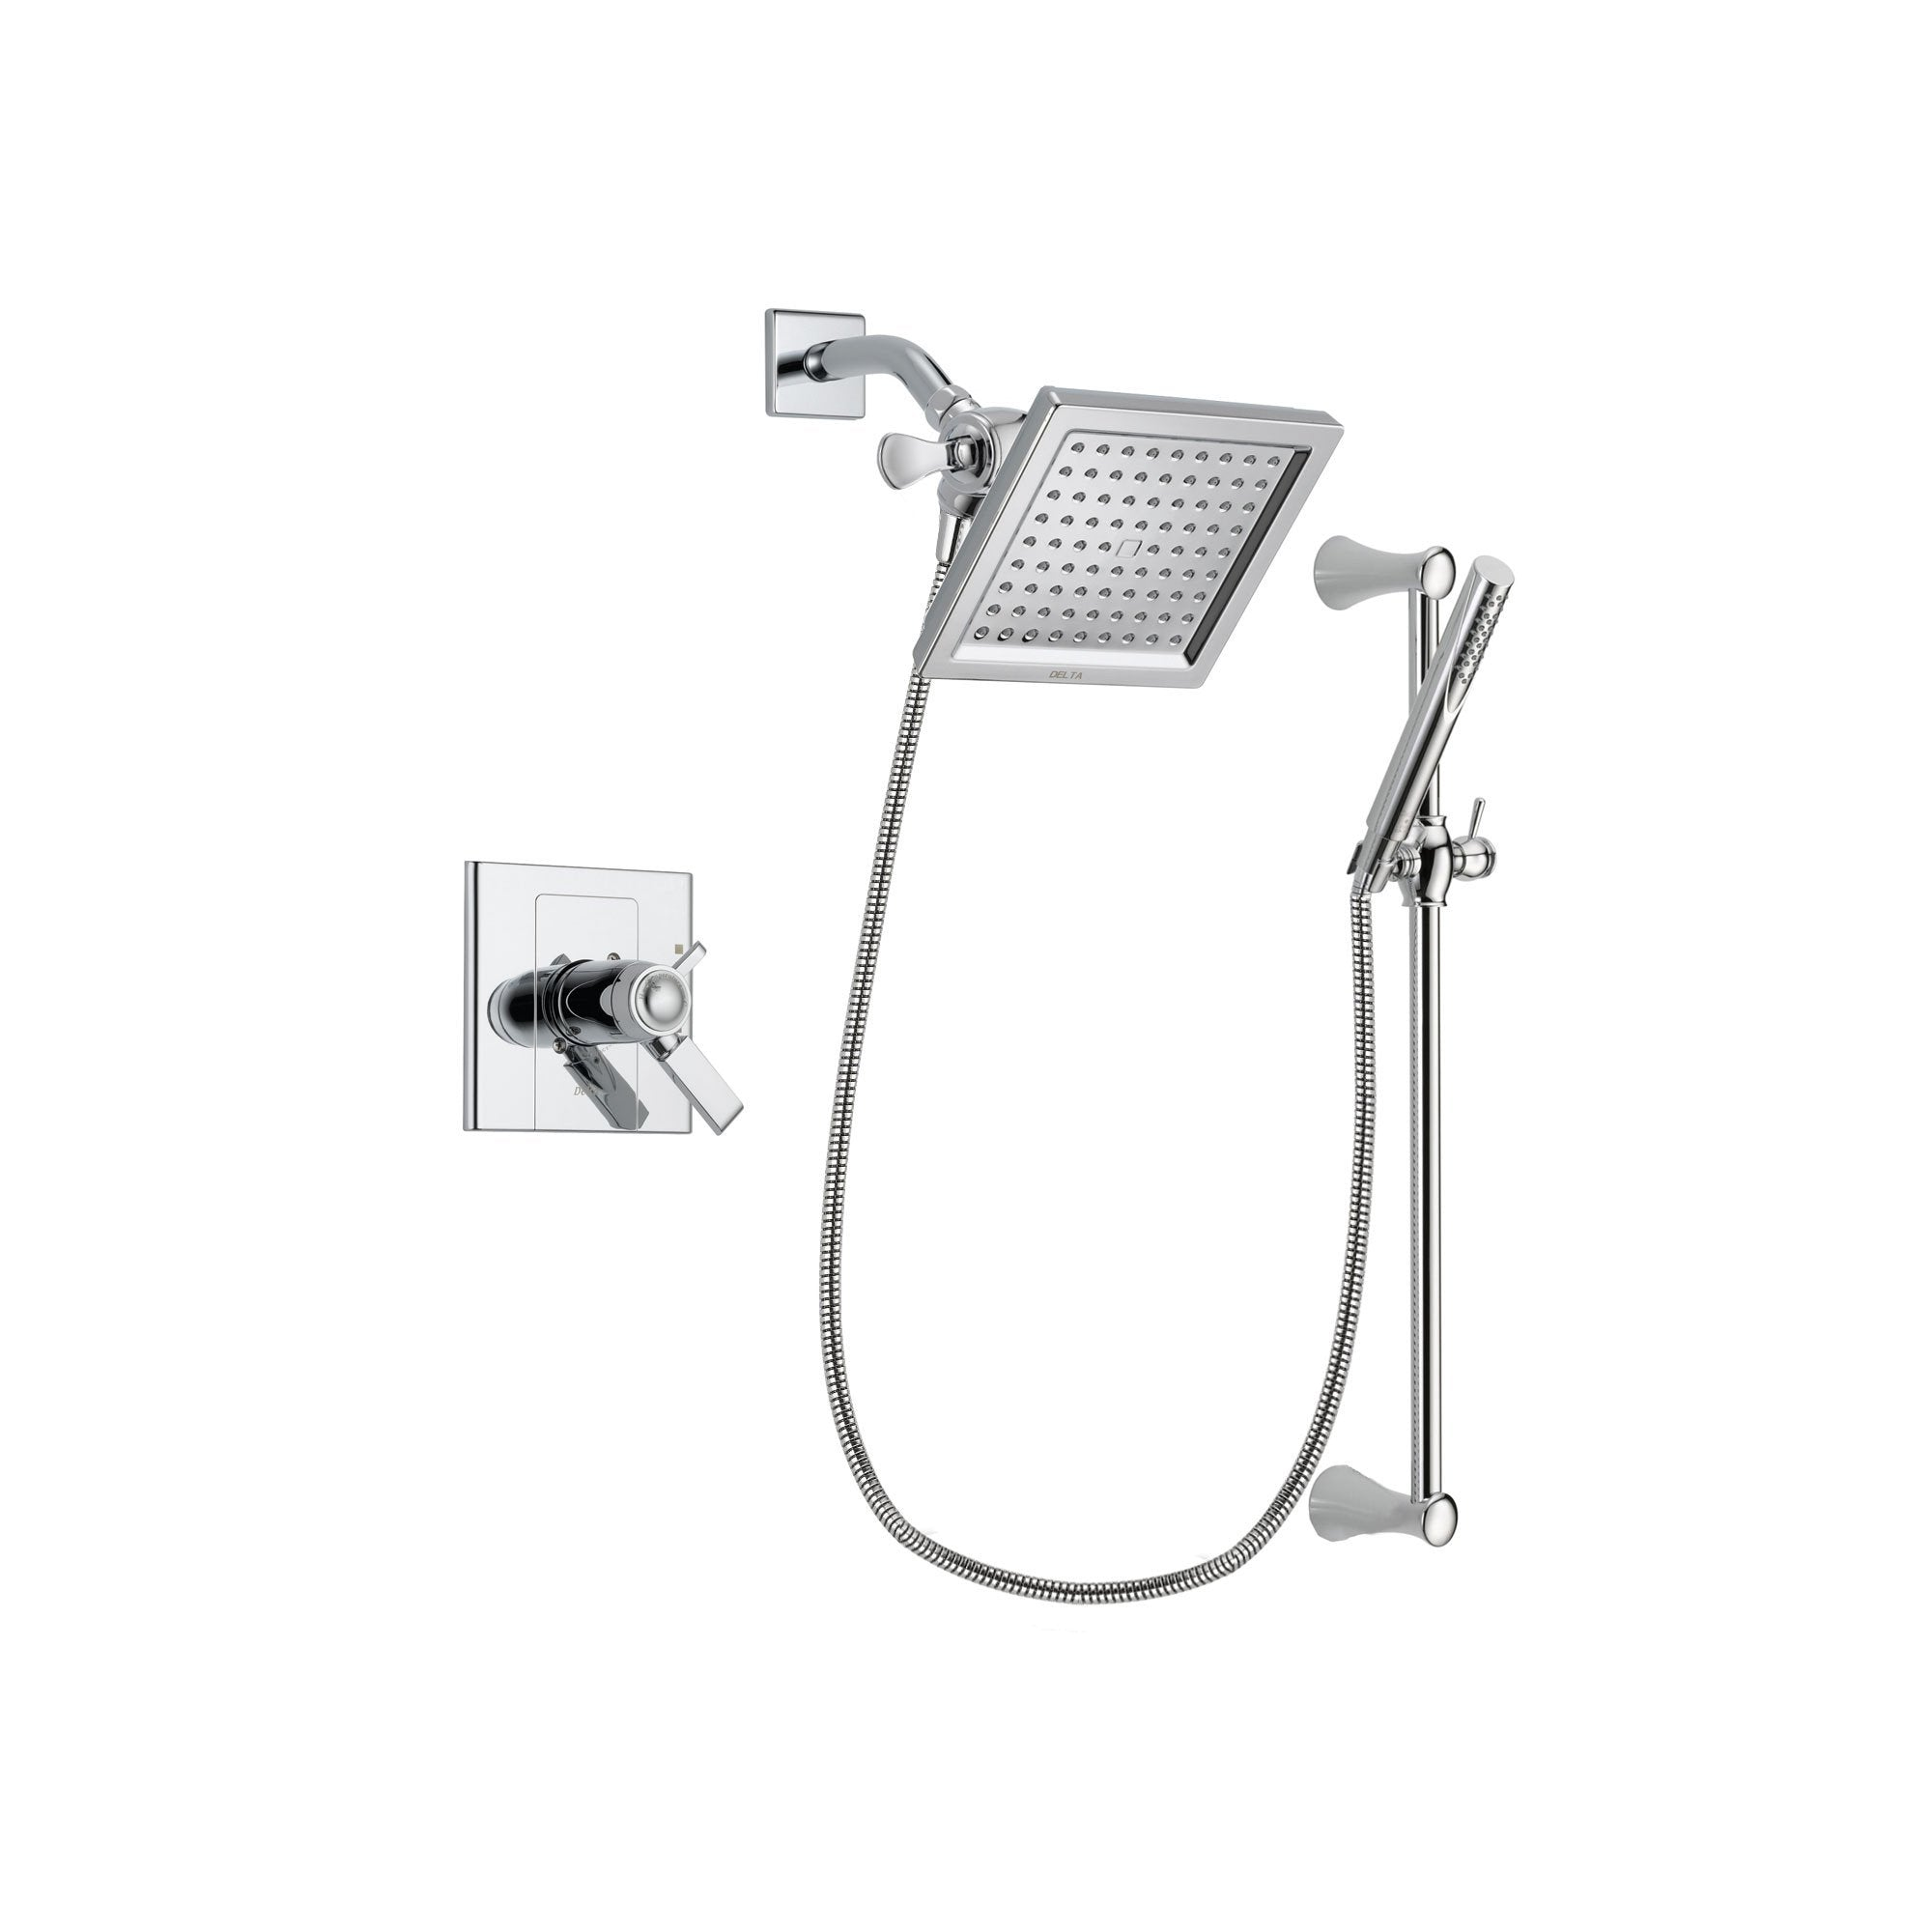 Delta Arzo Chrome Finish Thermostatic Shower Faucet System Package with 6.5-inch Square Rain Showerhead and Modern Wall Mount Slide Bar with Handheld Shower Spray Includes Rough-in Valve DSP0261V